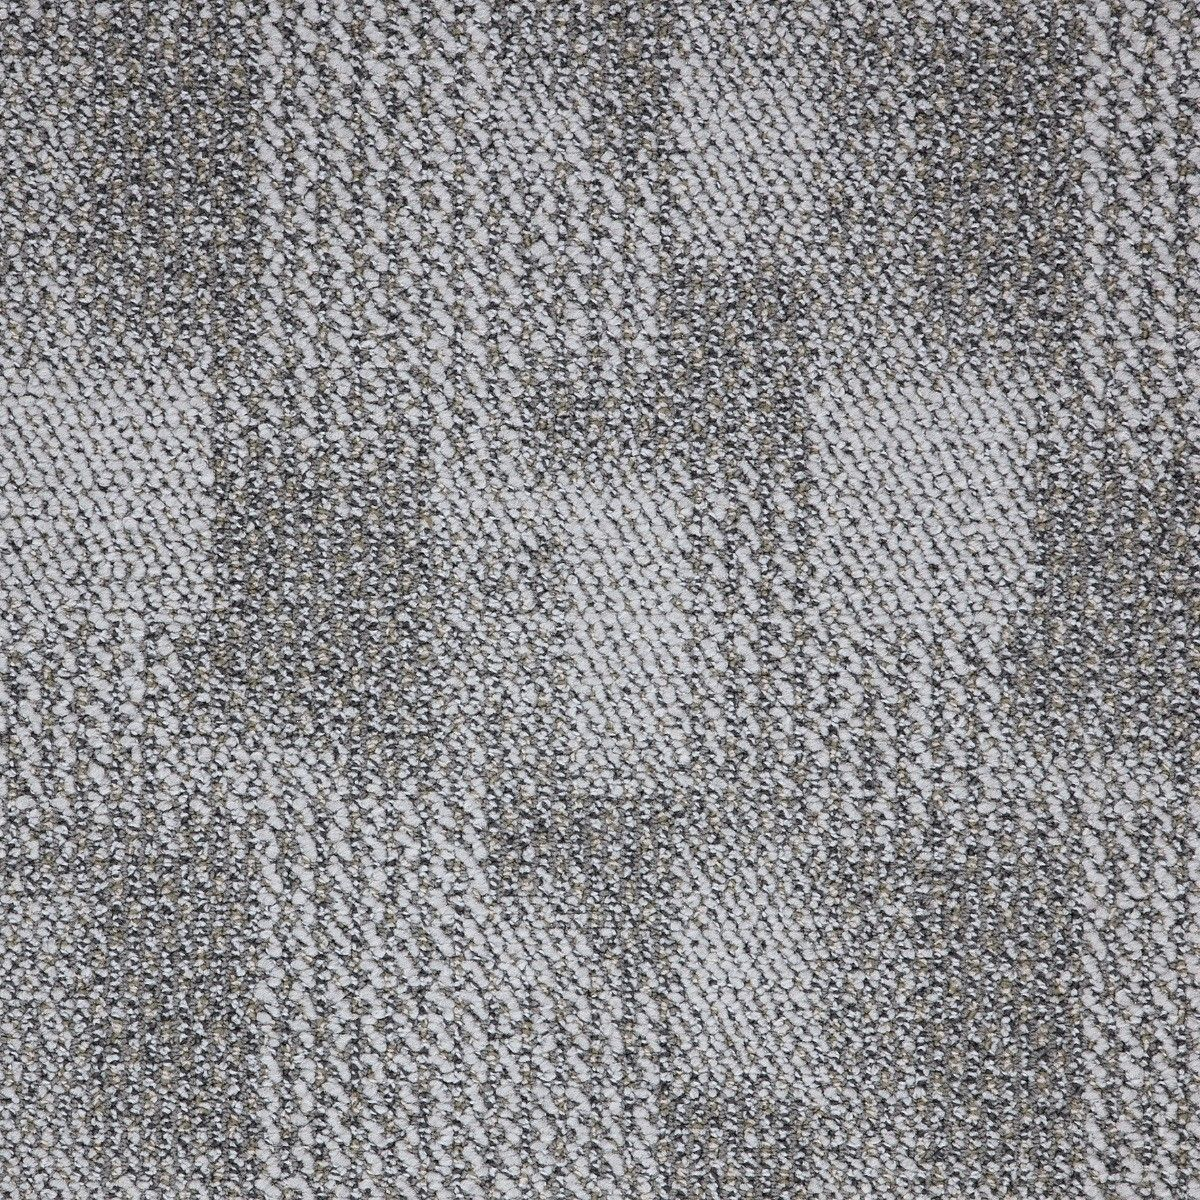 carpet grey. explore grey carpet, commercial flooring, and more! carpet